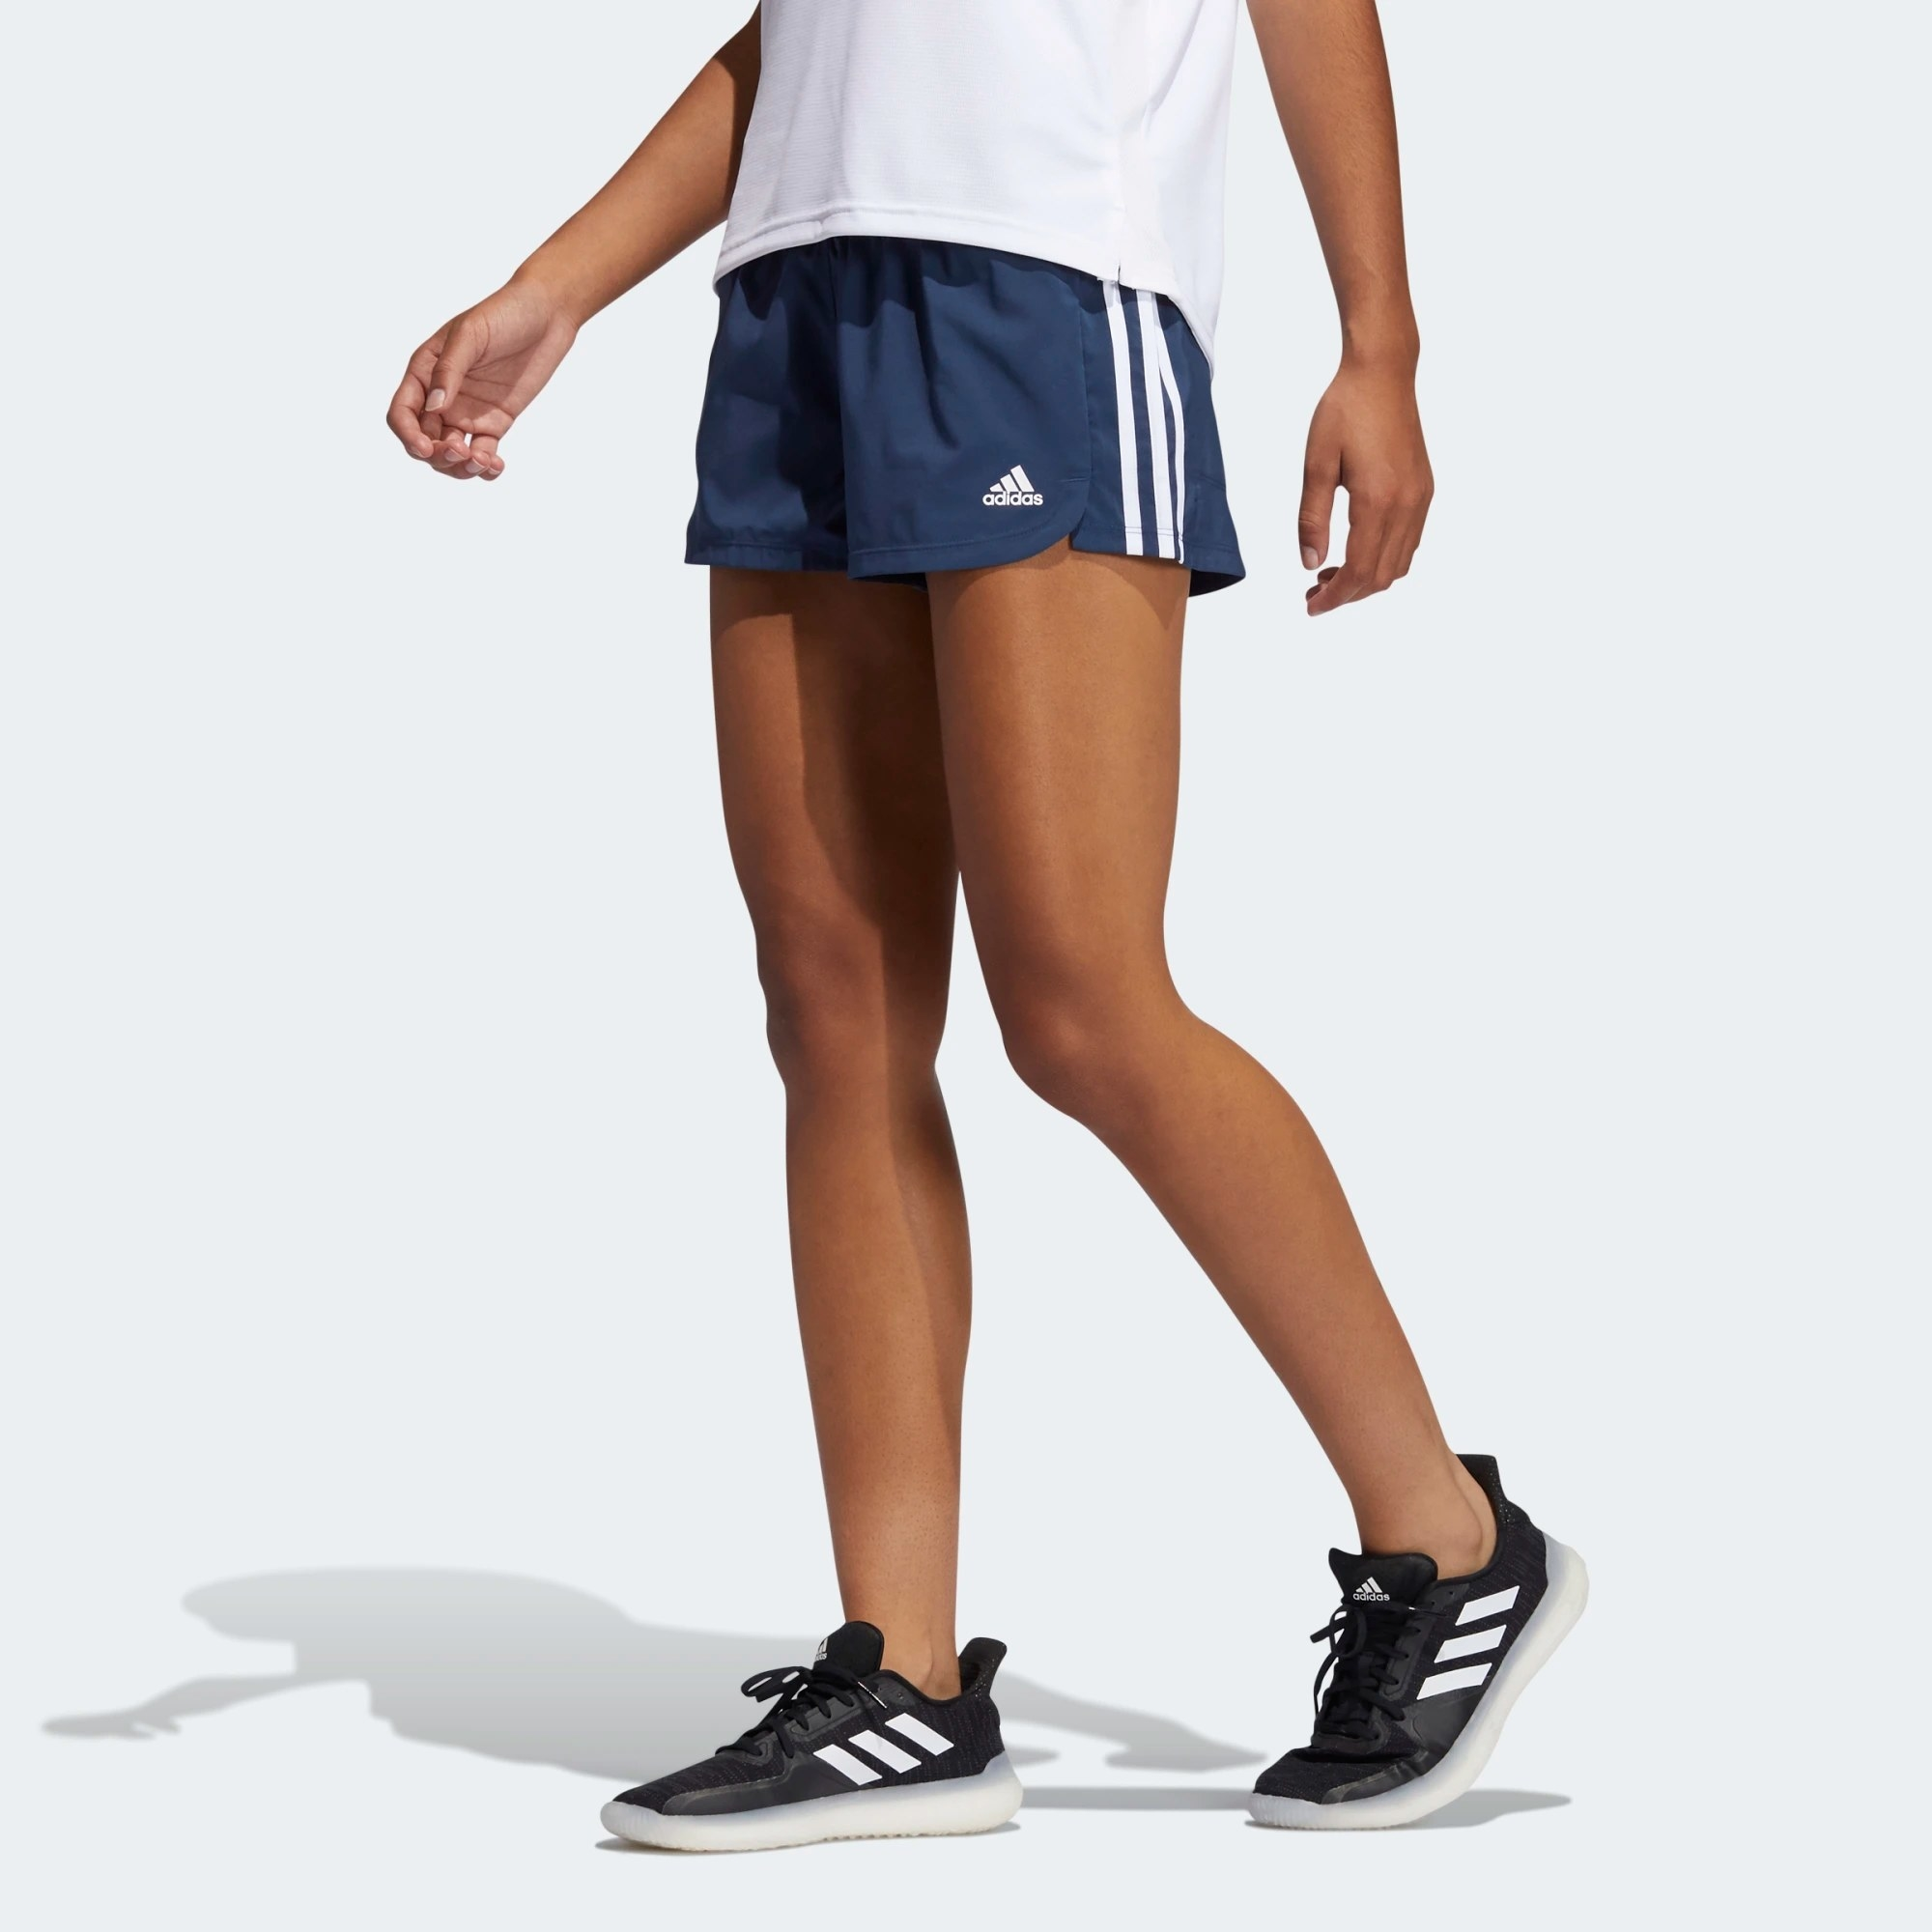 The shorts in blue and worn by a model